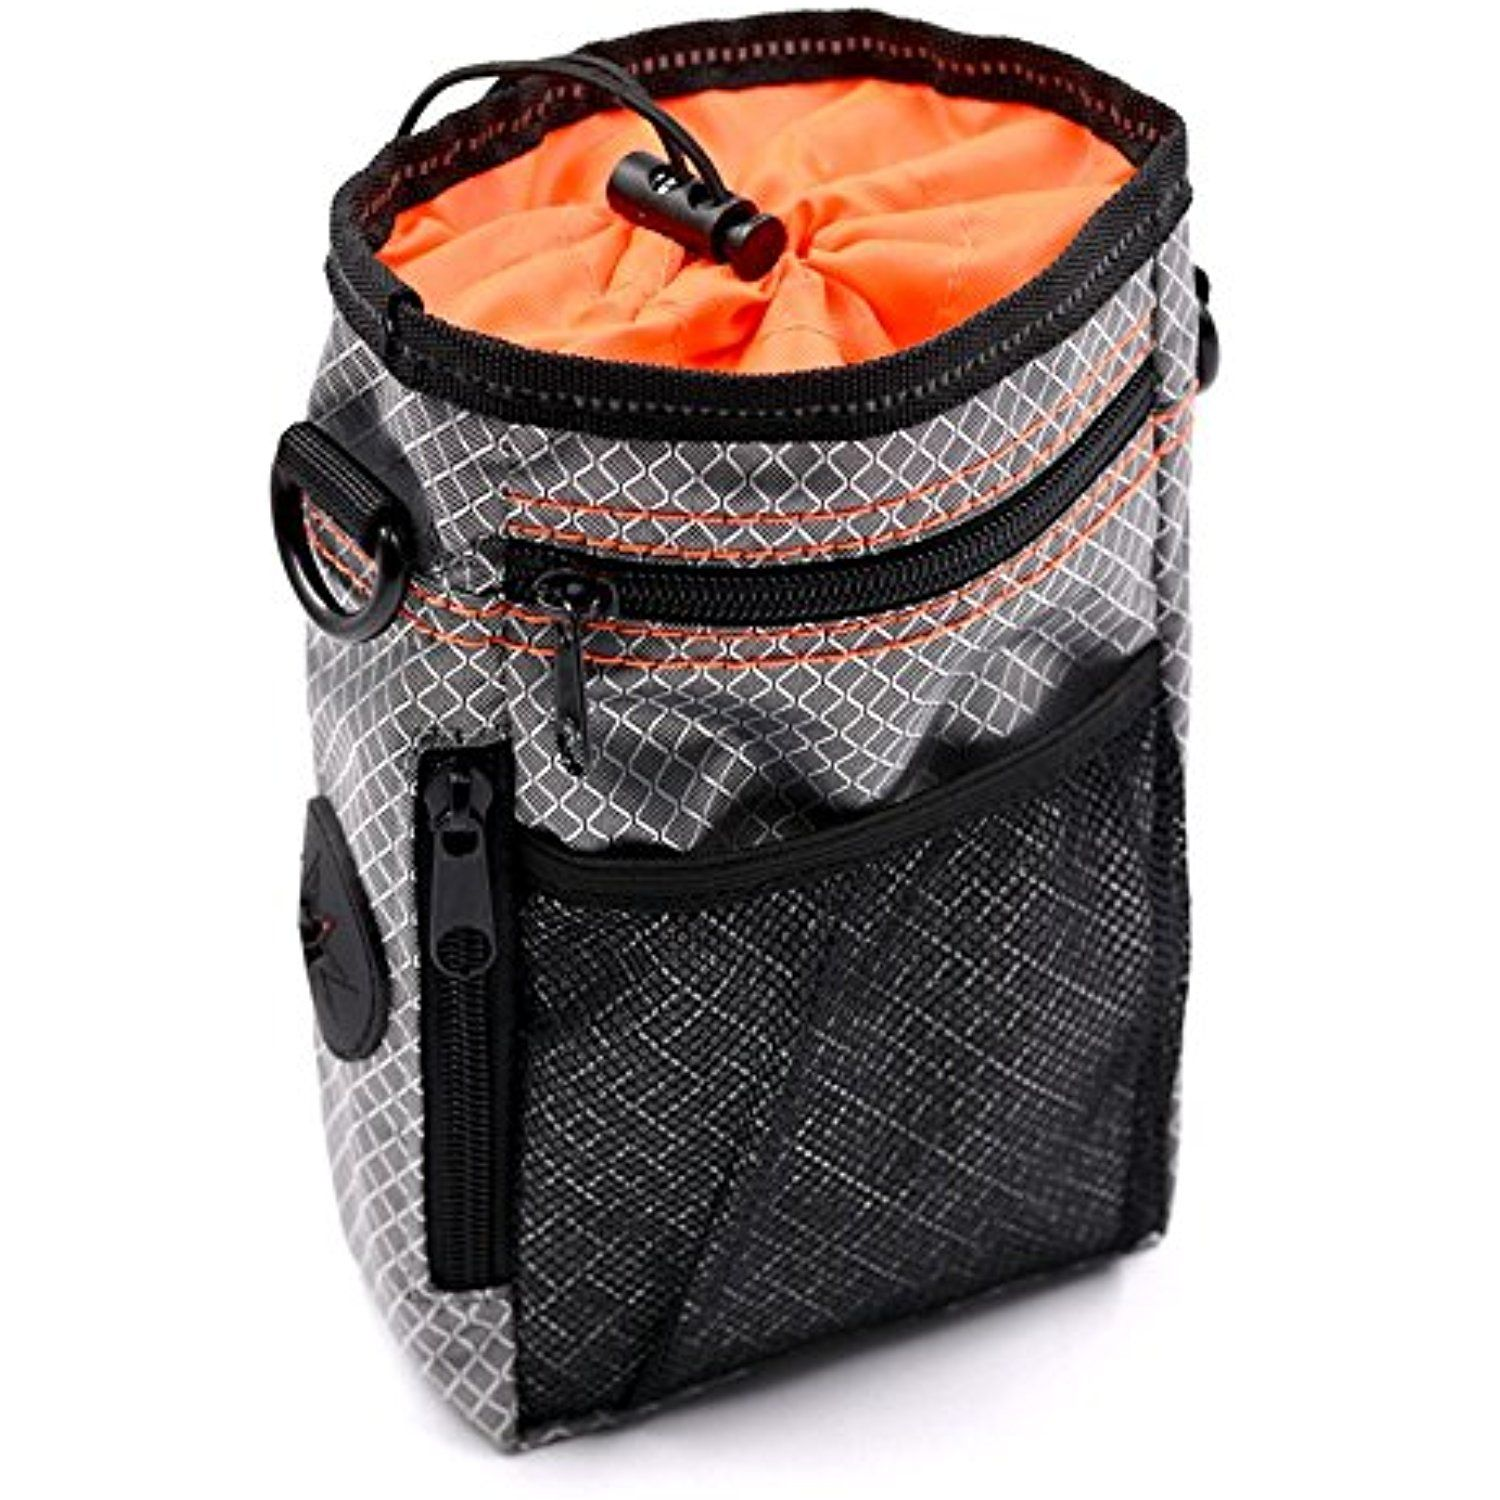 Dxable Dog Training Pouch Treat Bag Dual Compartments Insulated